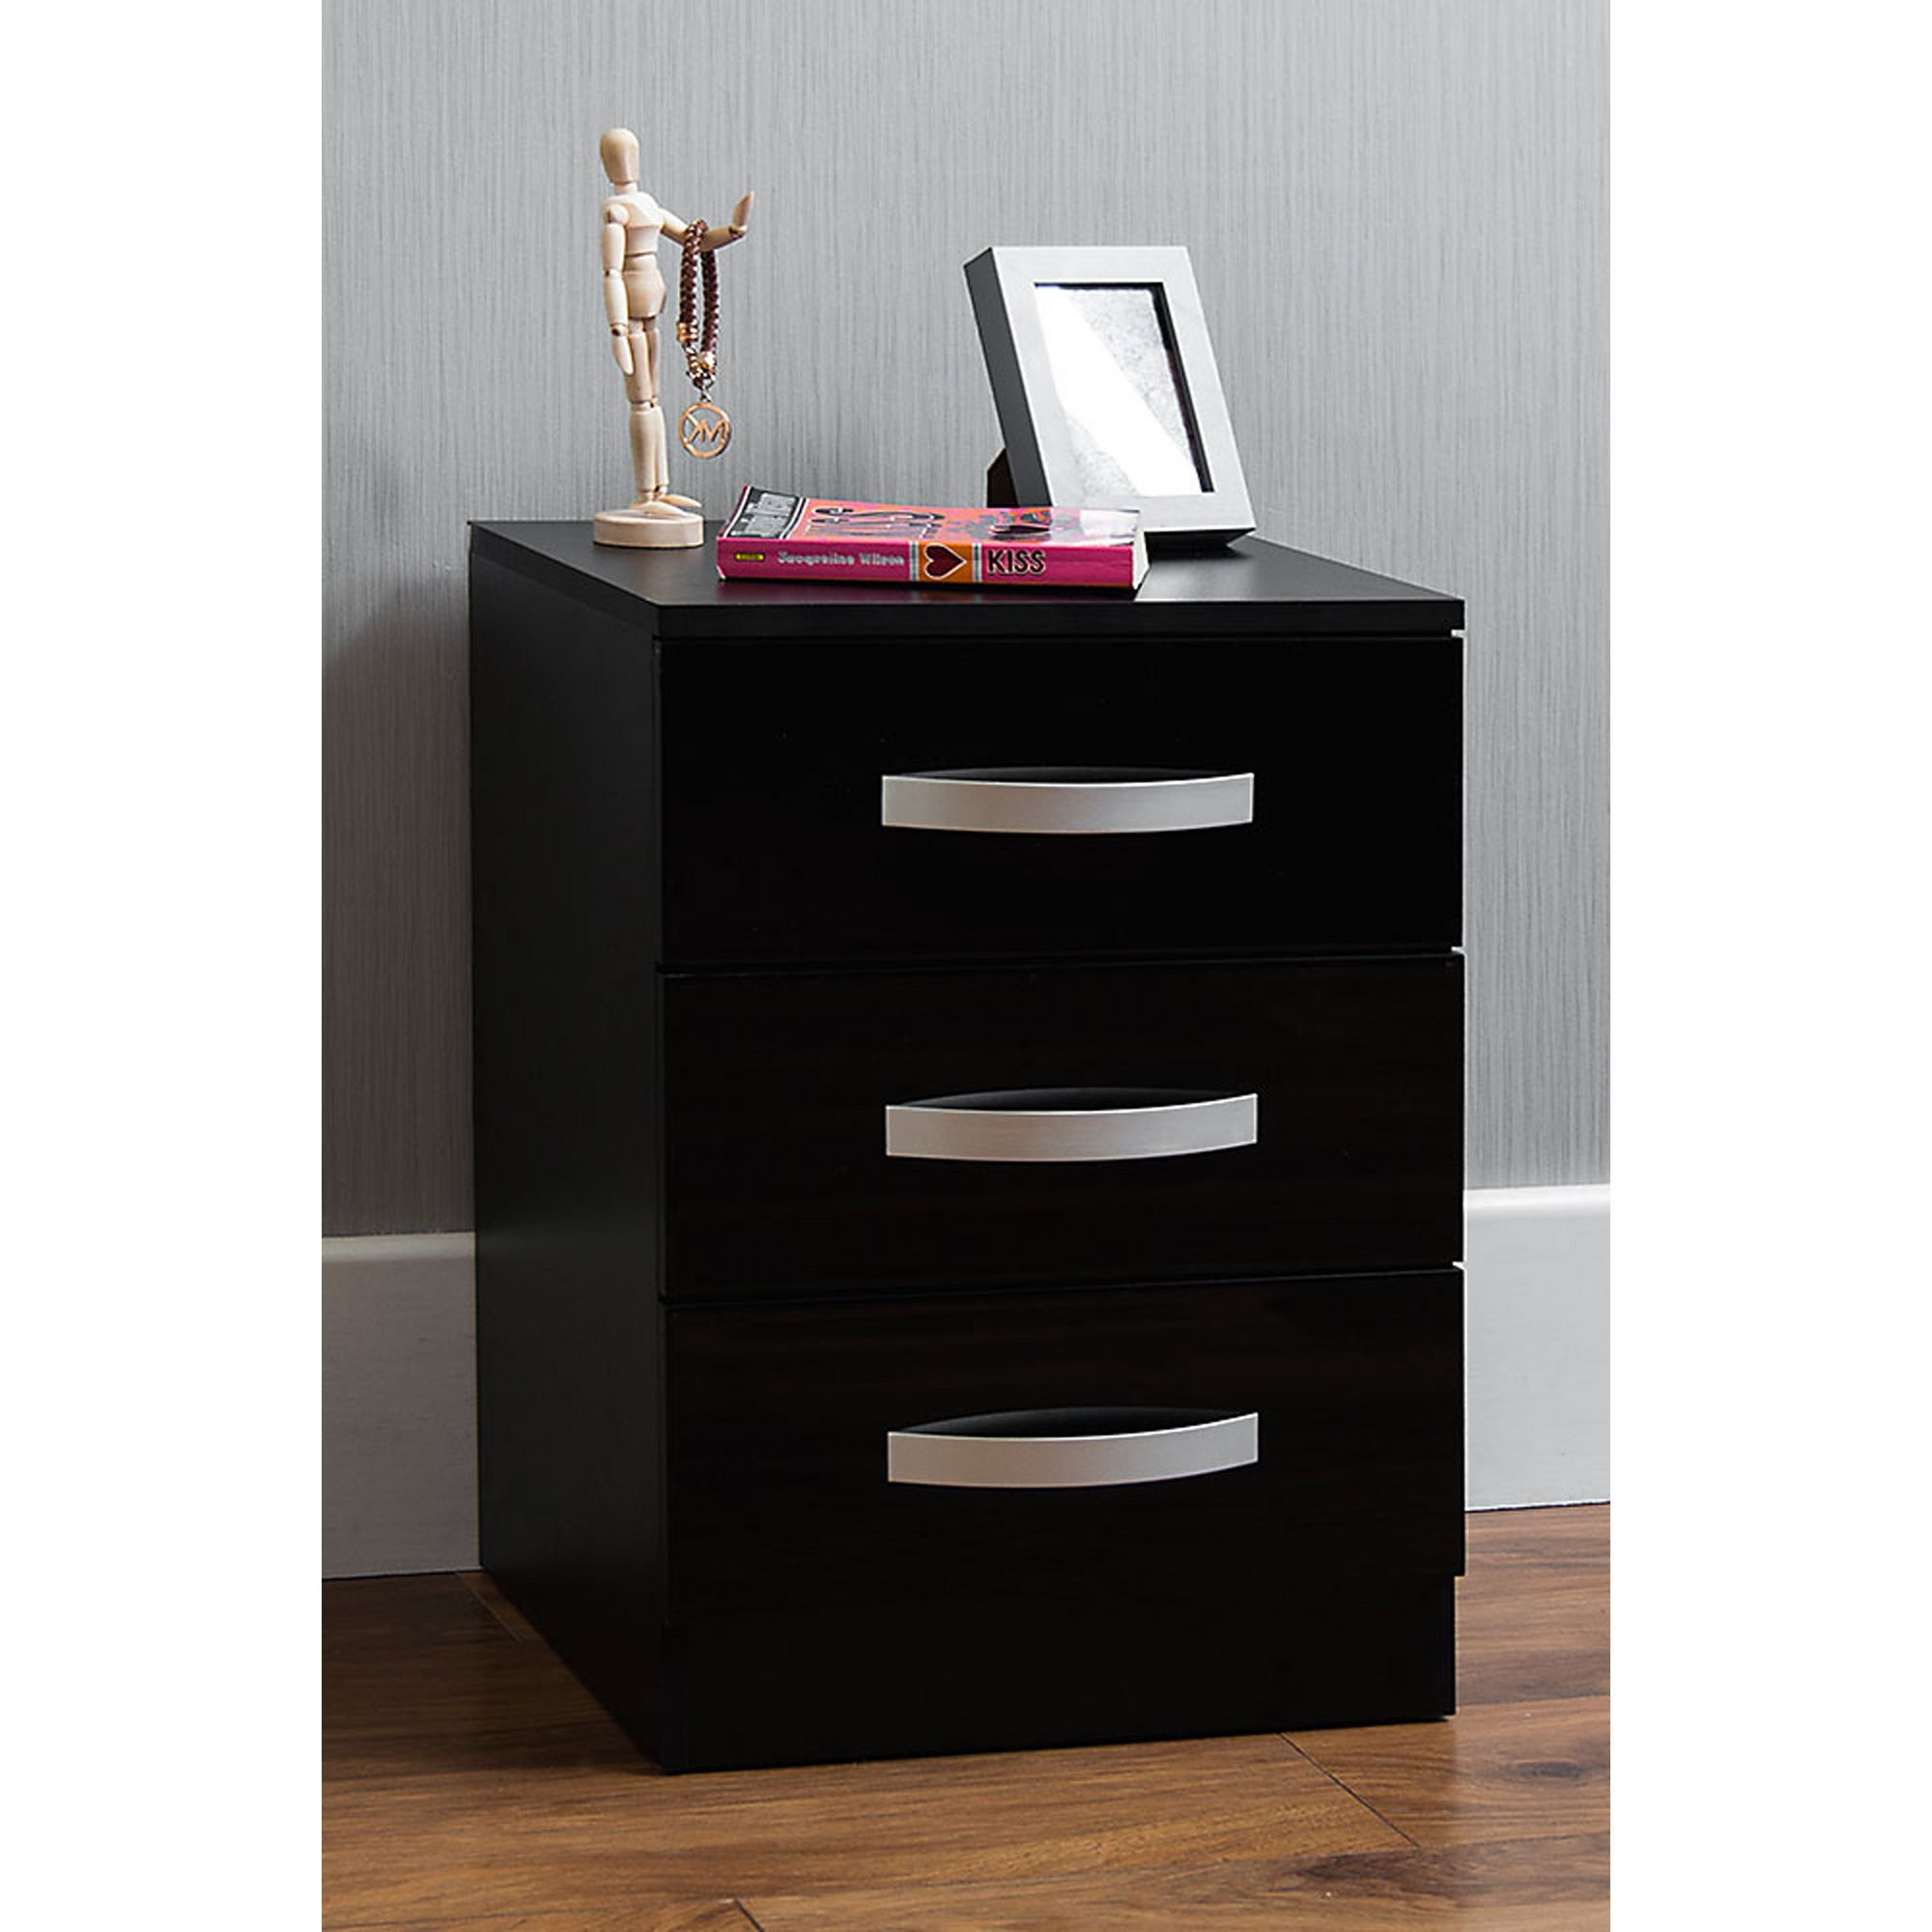 Image of Gloss Front 3 Drawer Bedside Table